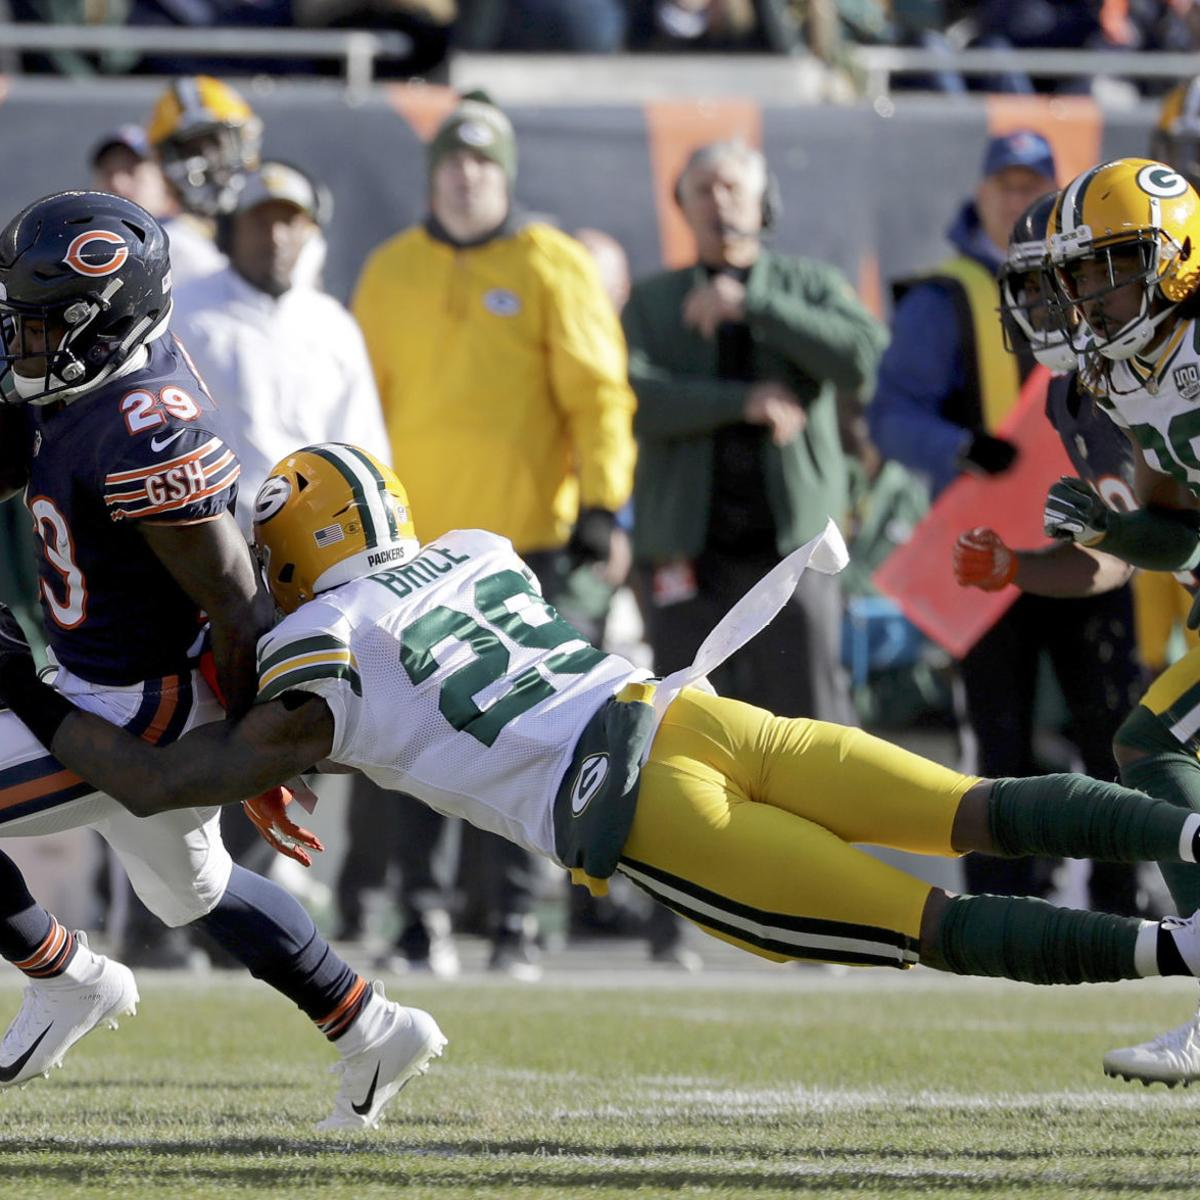 c82c34b5 Green Bay Packers' slim playoff hopes crushed with 24-17 loss to ...